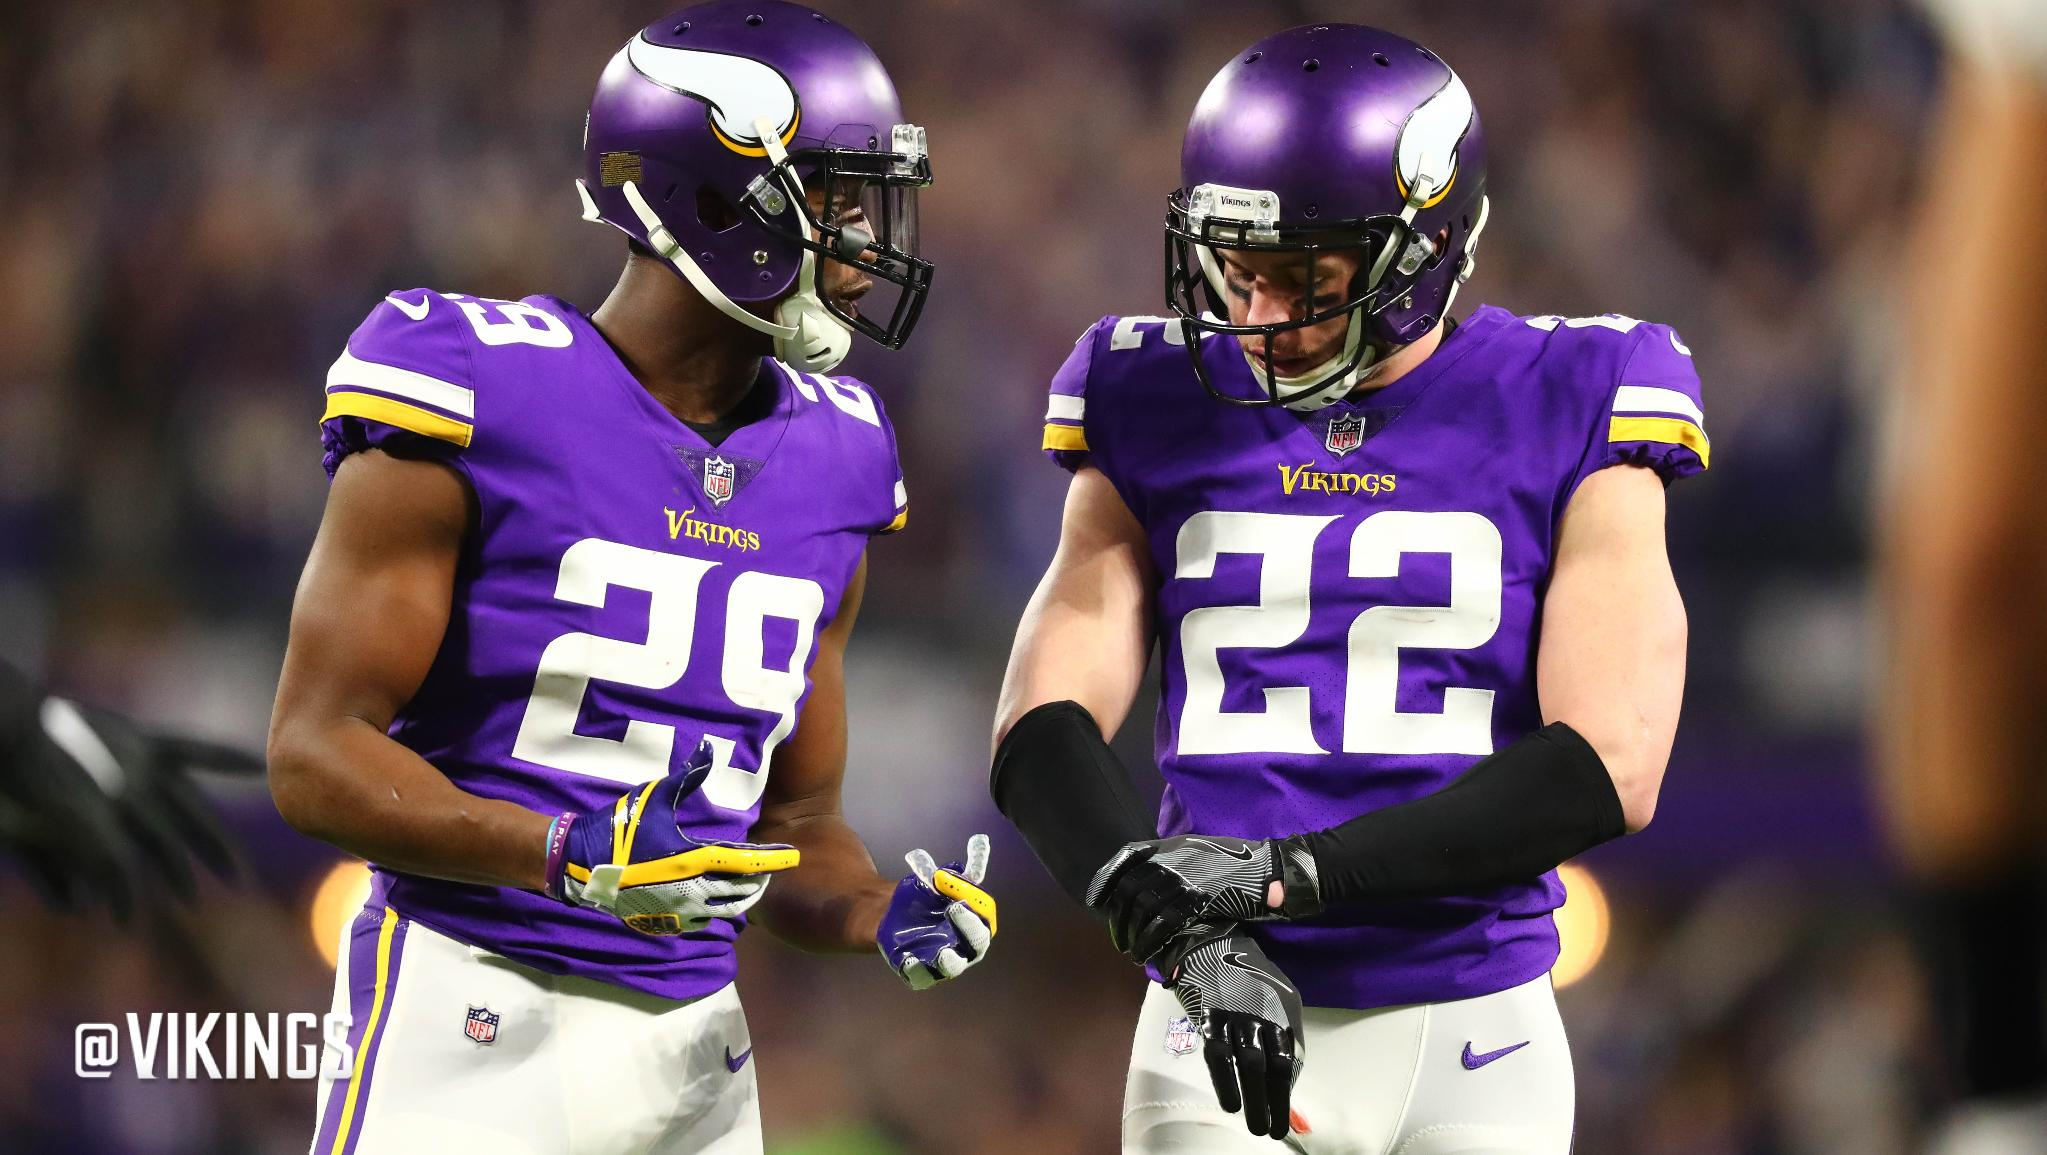 With two All-Pros, the #Vikings secondary was a strong suit in 2017.  ��: https://t.co/nPa4KFPbRi https://t.co/Mgw2ueonA2